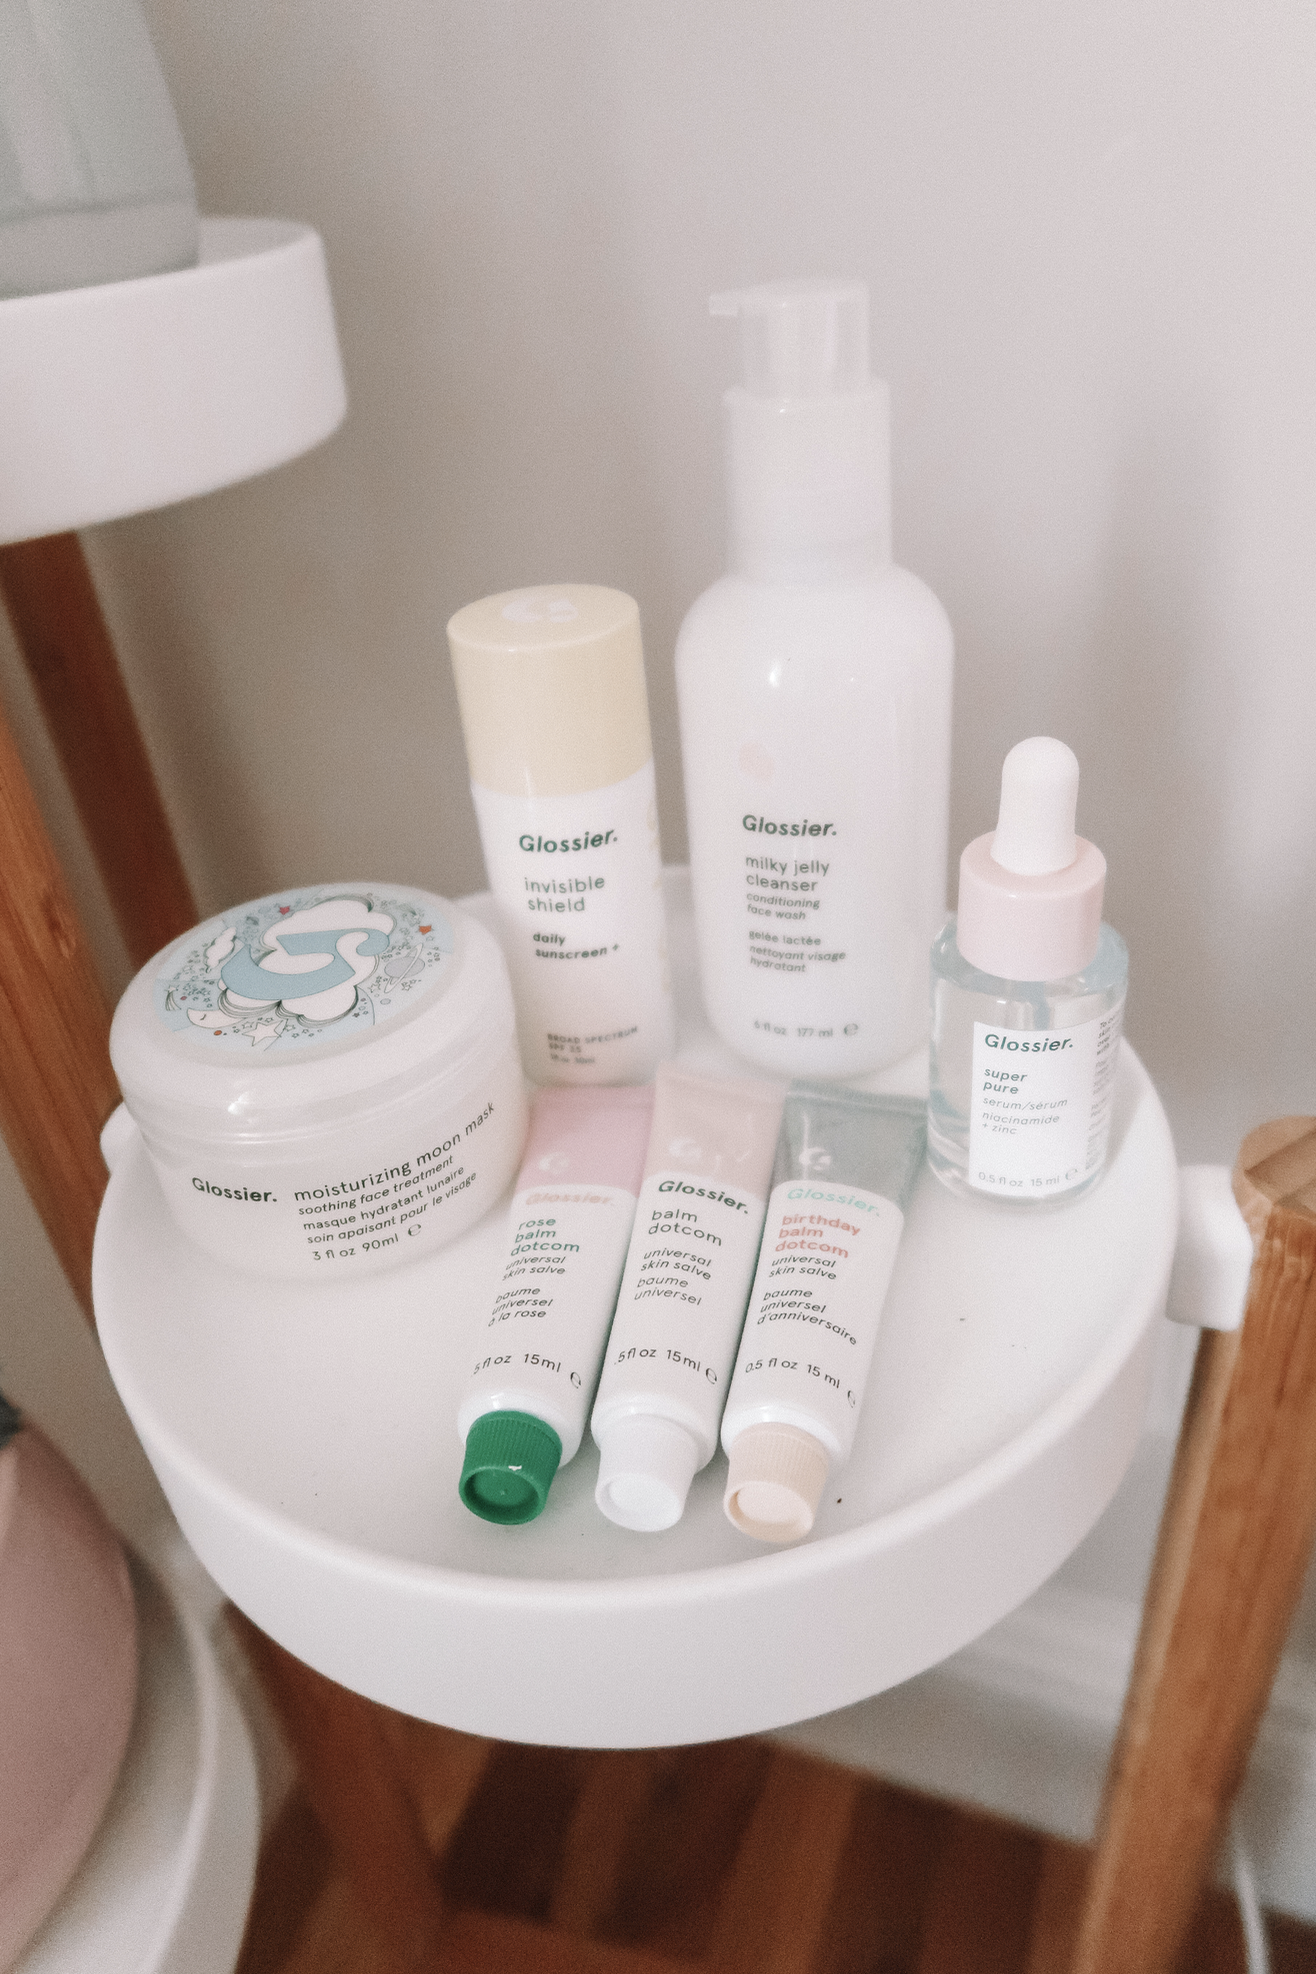 Glossier: Worth the Hype?